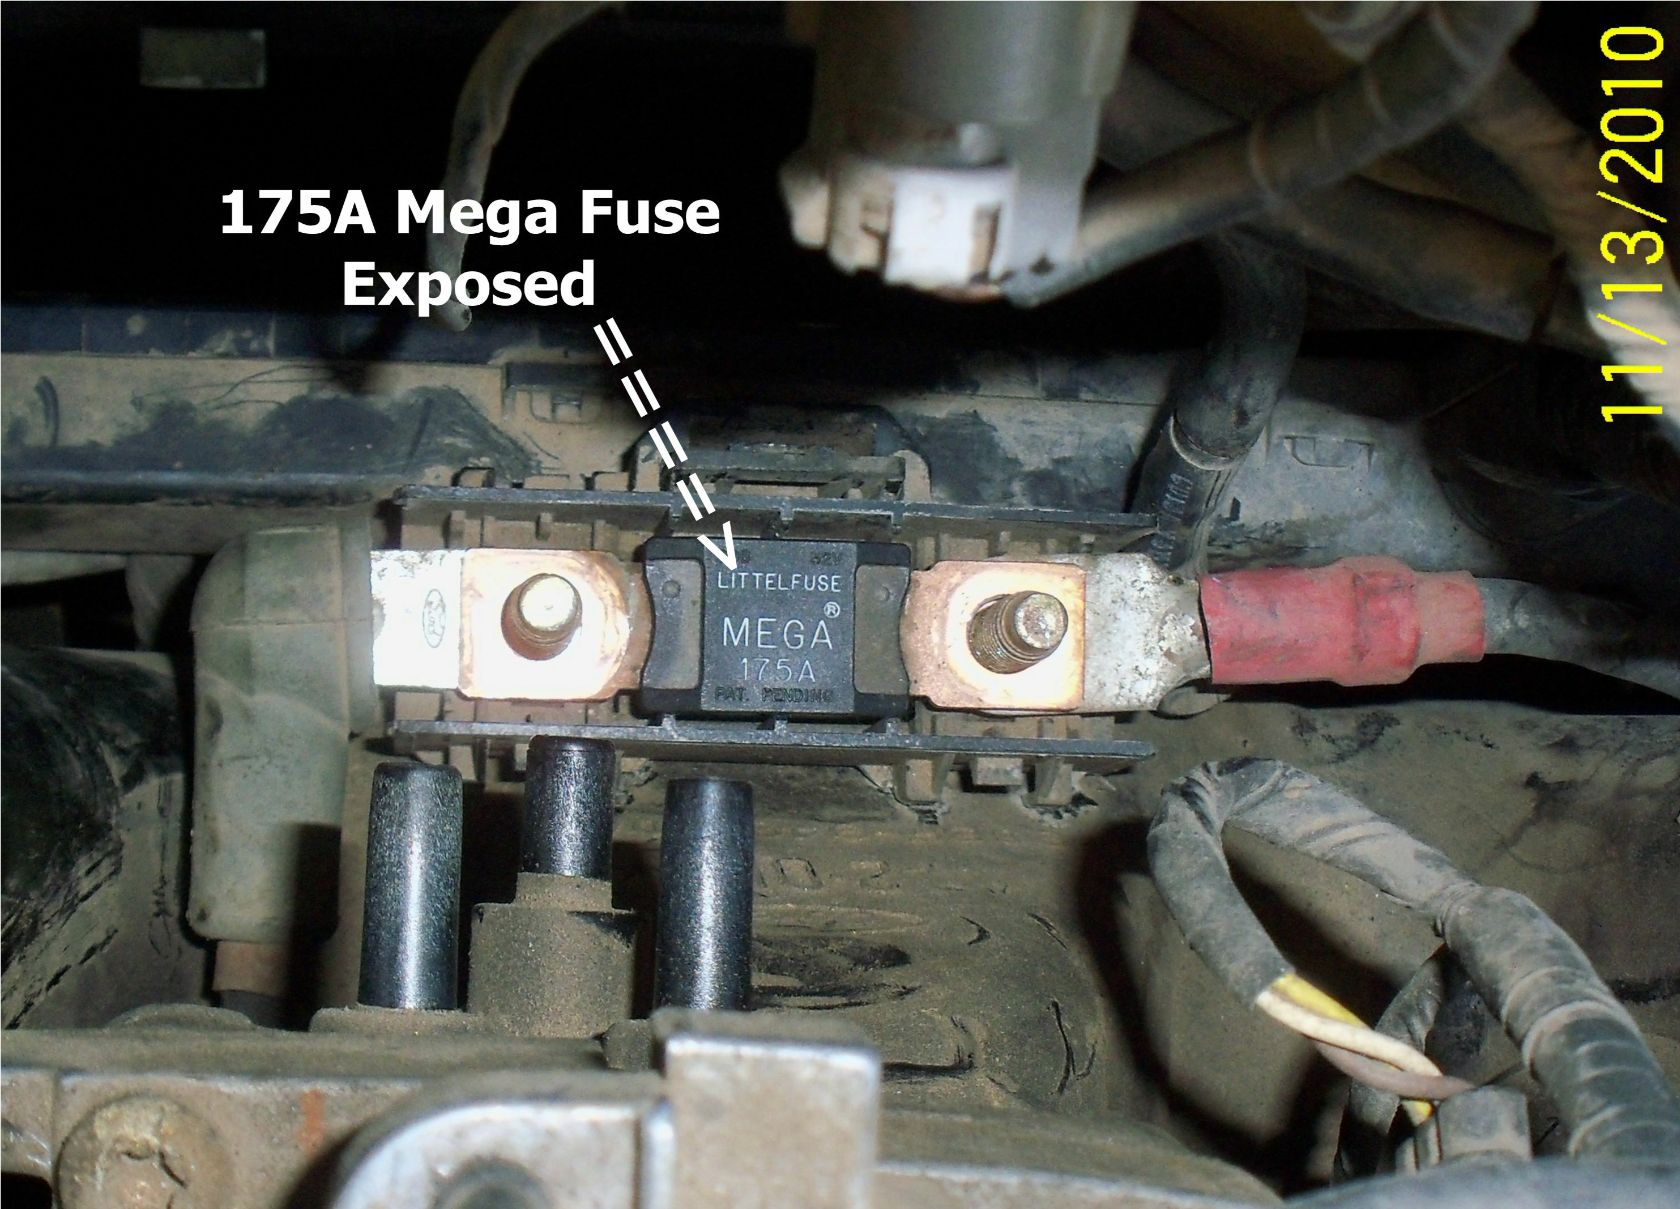 2005 Ford Explorer Fuse Block Diagram Starting Know About Wiring 6 4 Box 1996 Contour 2 0l Replaced Alternator But Battery Panel 05